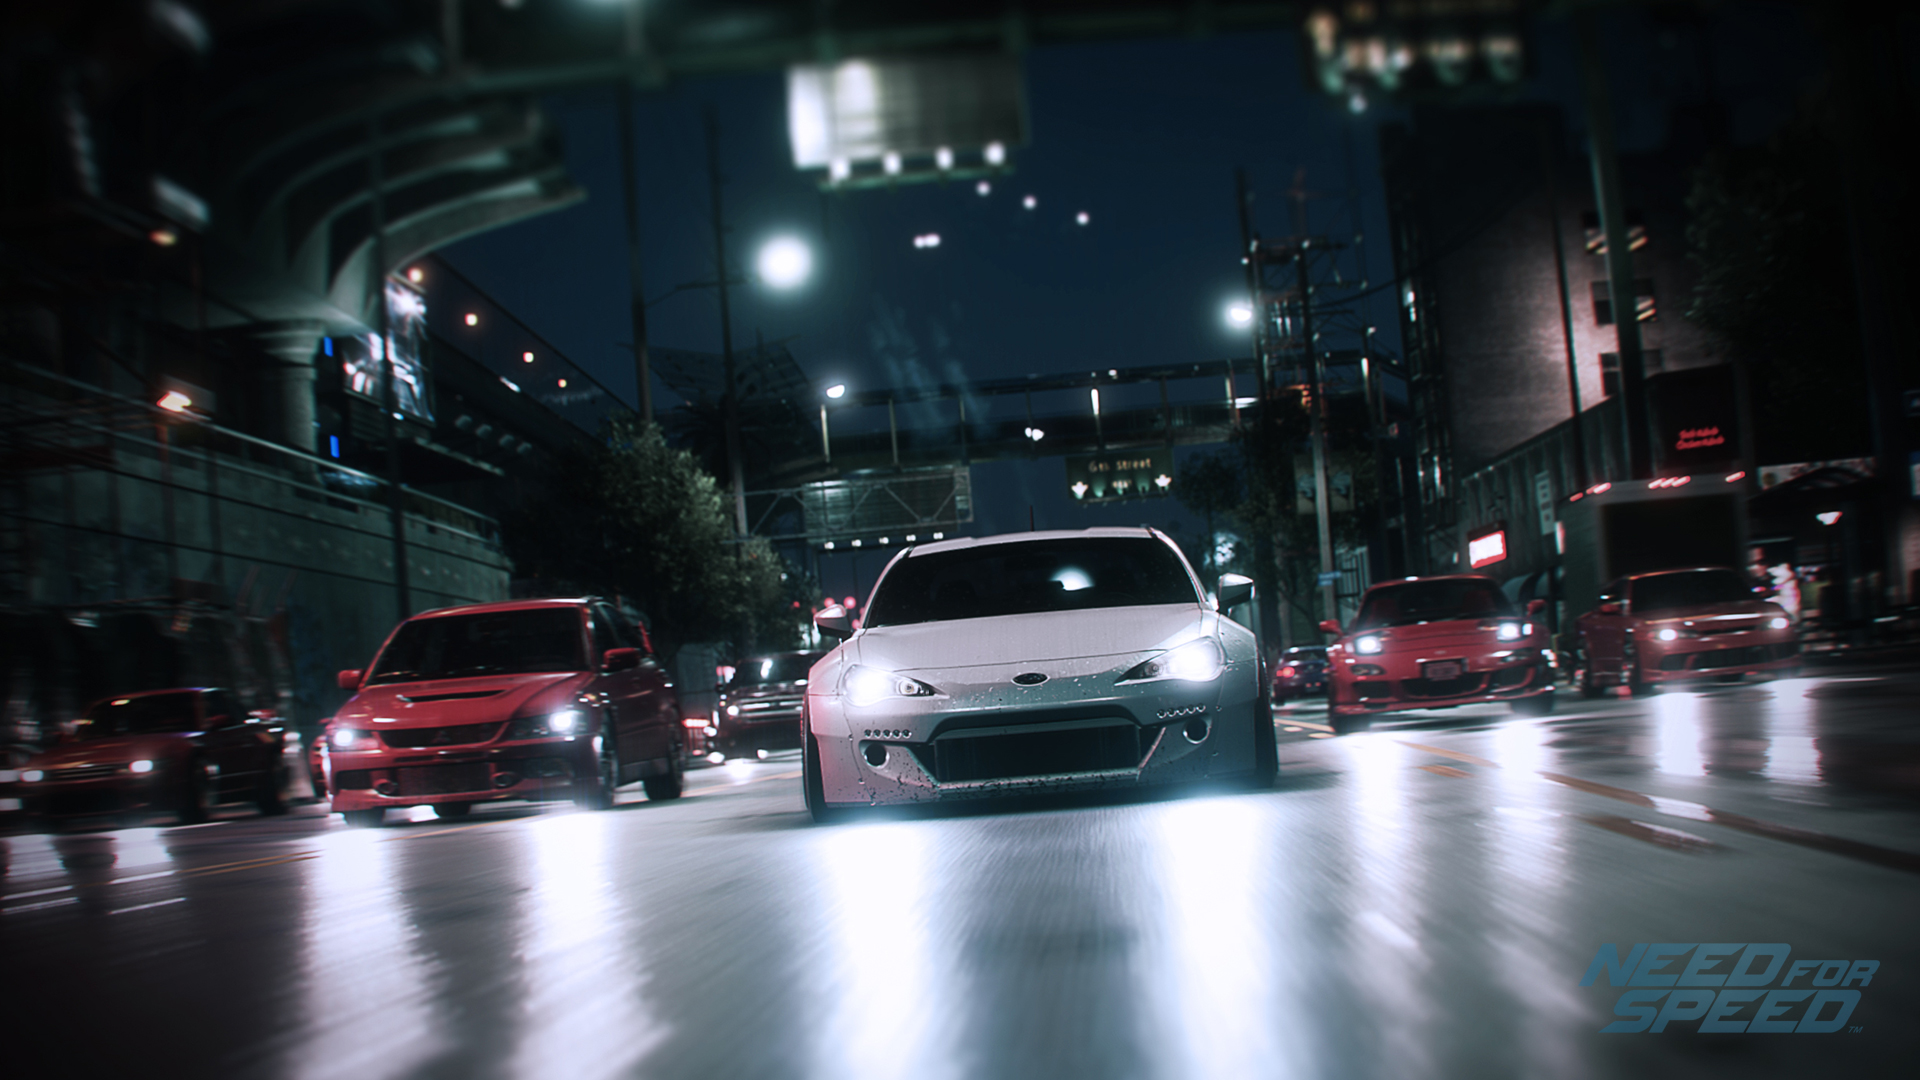 Need For Speed 2015 Wallpapers Pictures Images 1920x1080